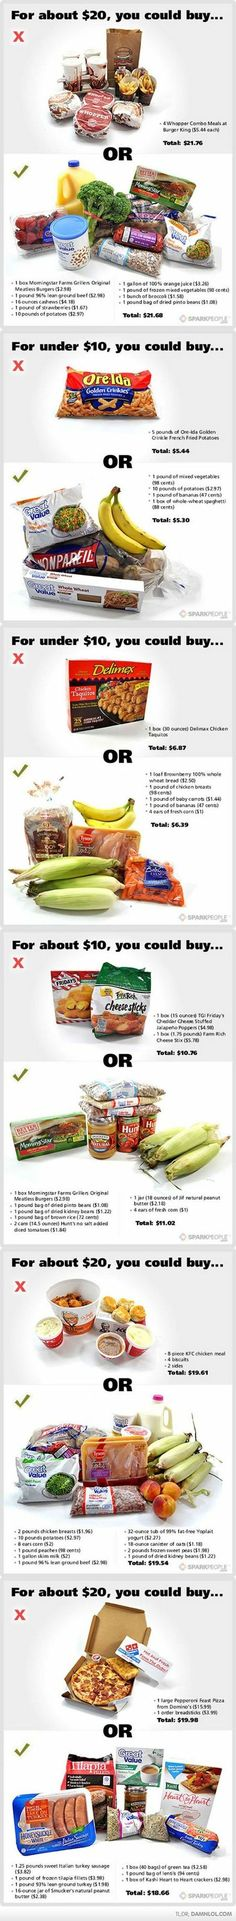 Buy your food wisely!